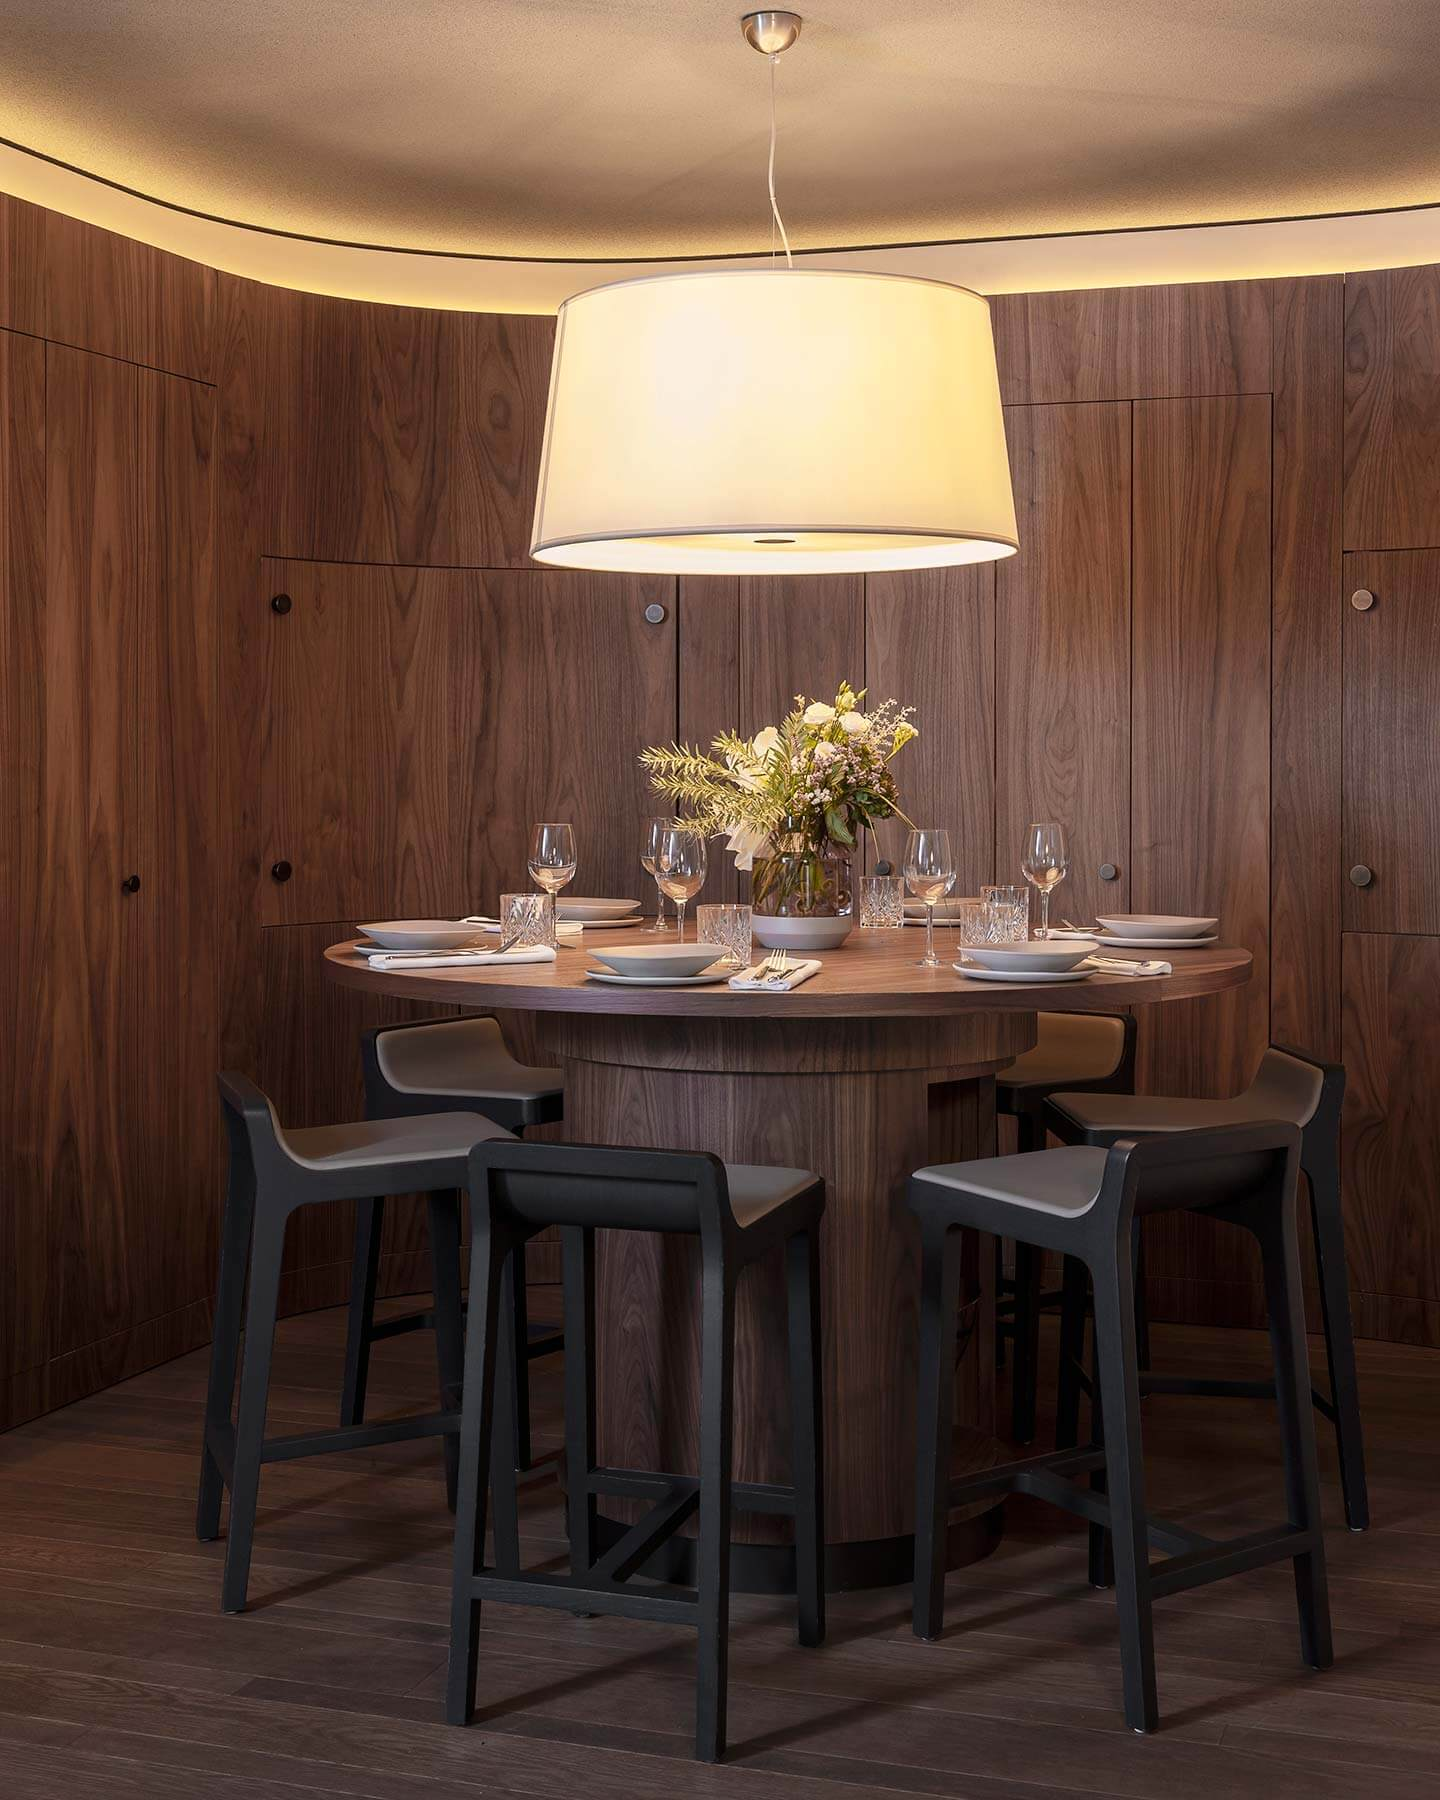 Dark wood round high table, stools and large hanging lamp